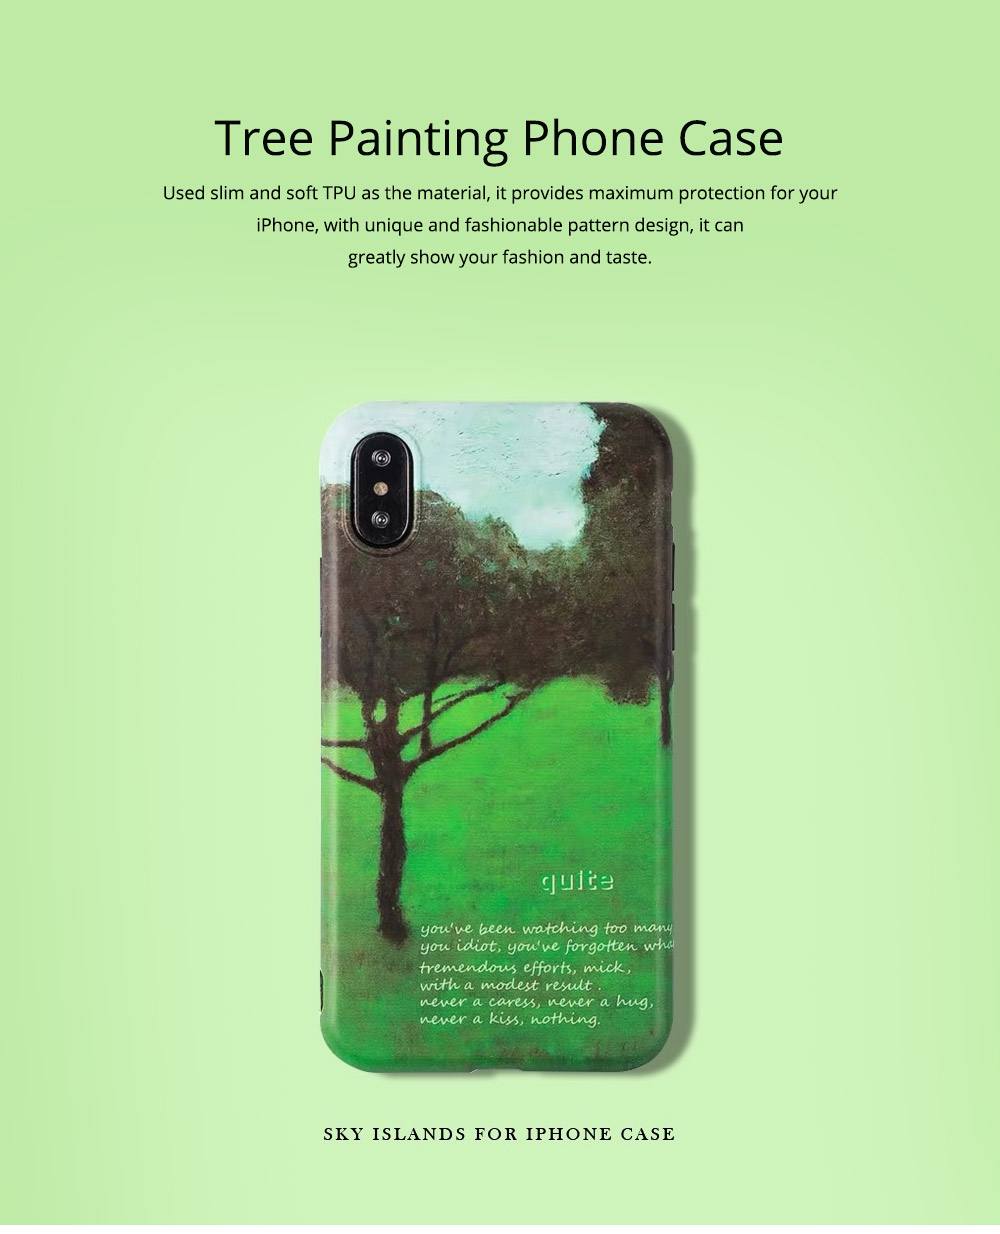 Green Tree Painting Phone Back Cover, Slim Bumper Phone Case for iPhone 6 6s, iPhone 6 plus 6 plus, iPhone 7 8, iPhone X XS, iPhone XS Max, iPhone XR 0